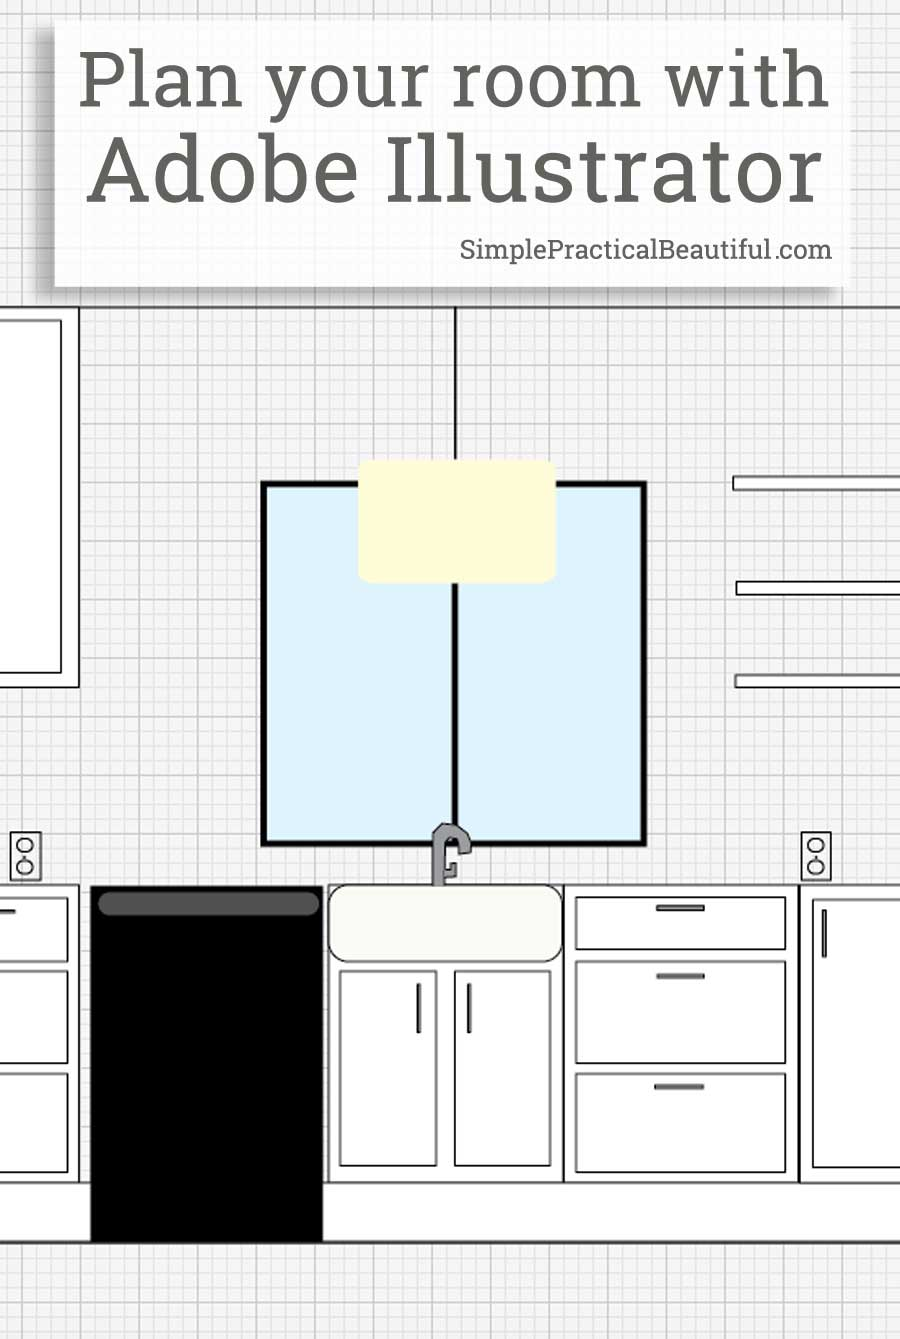 Use Adobe Illustrator To Create An Accurate And Scaled Layout Of Any Room |  Especially Great